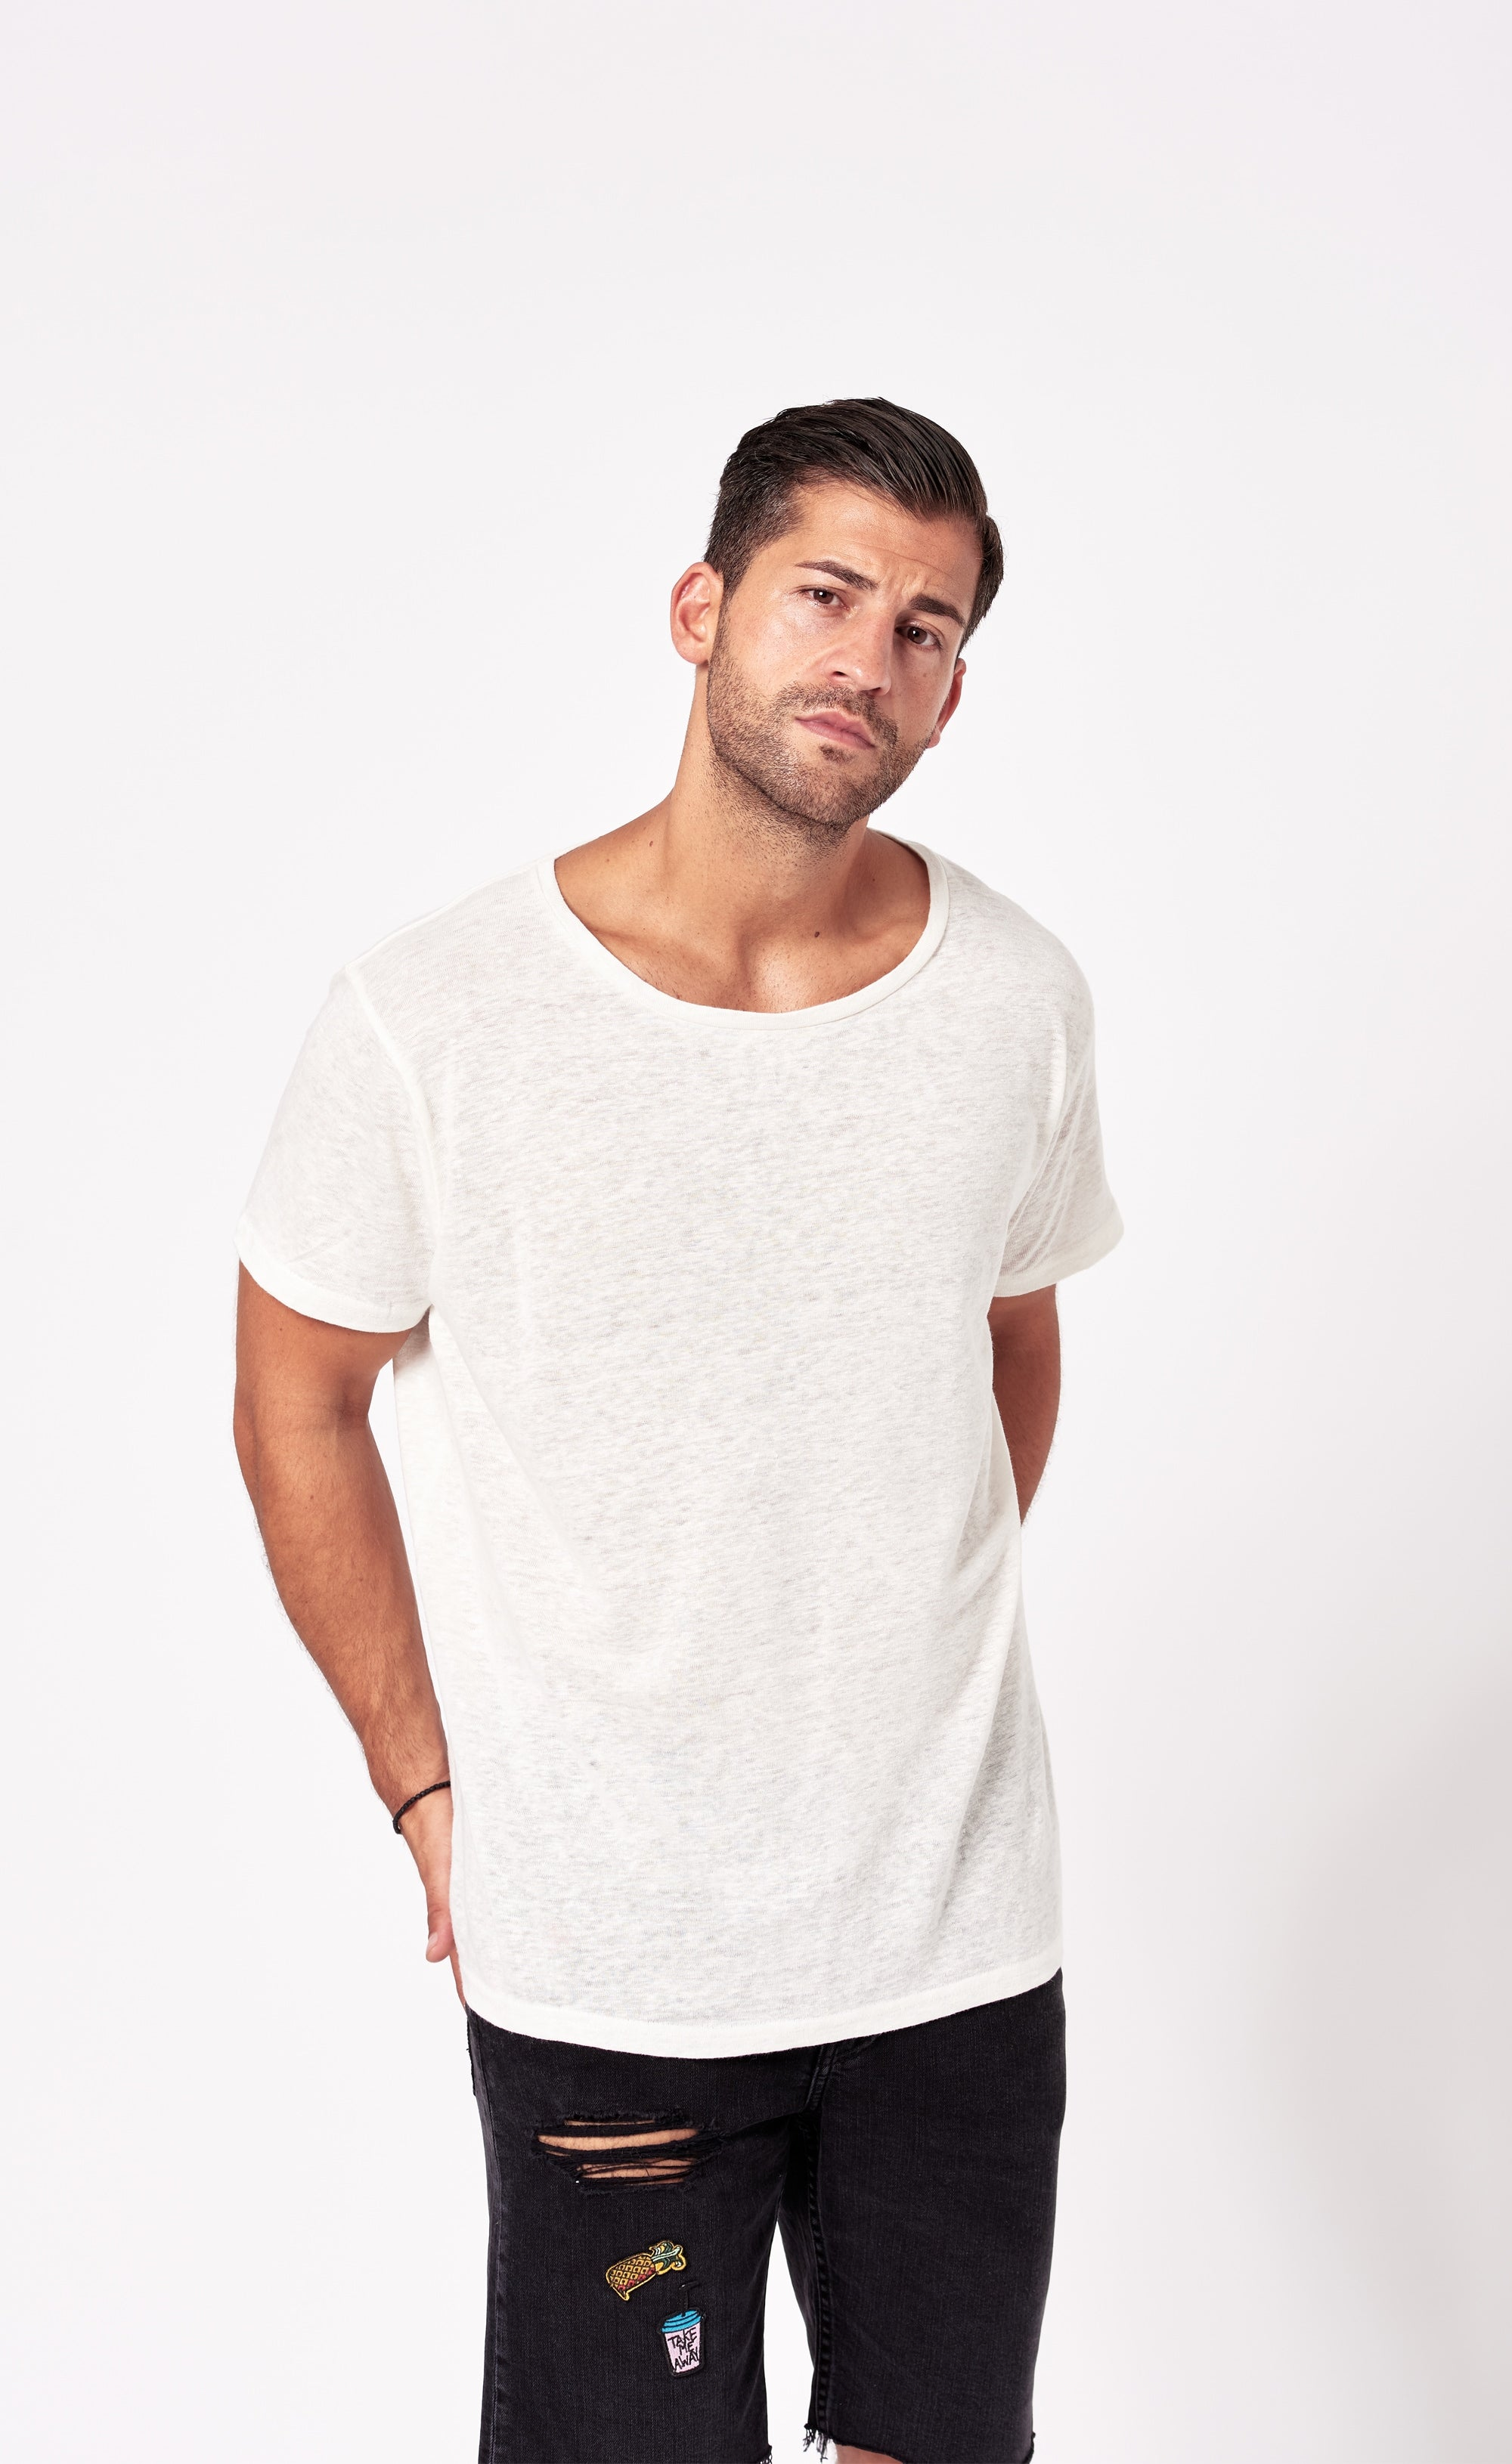 LINEN T-SHIRT - OFF-WHITE - Forage-Clothing